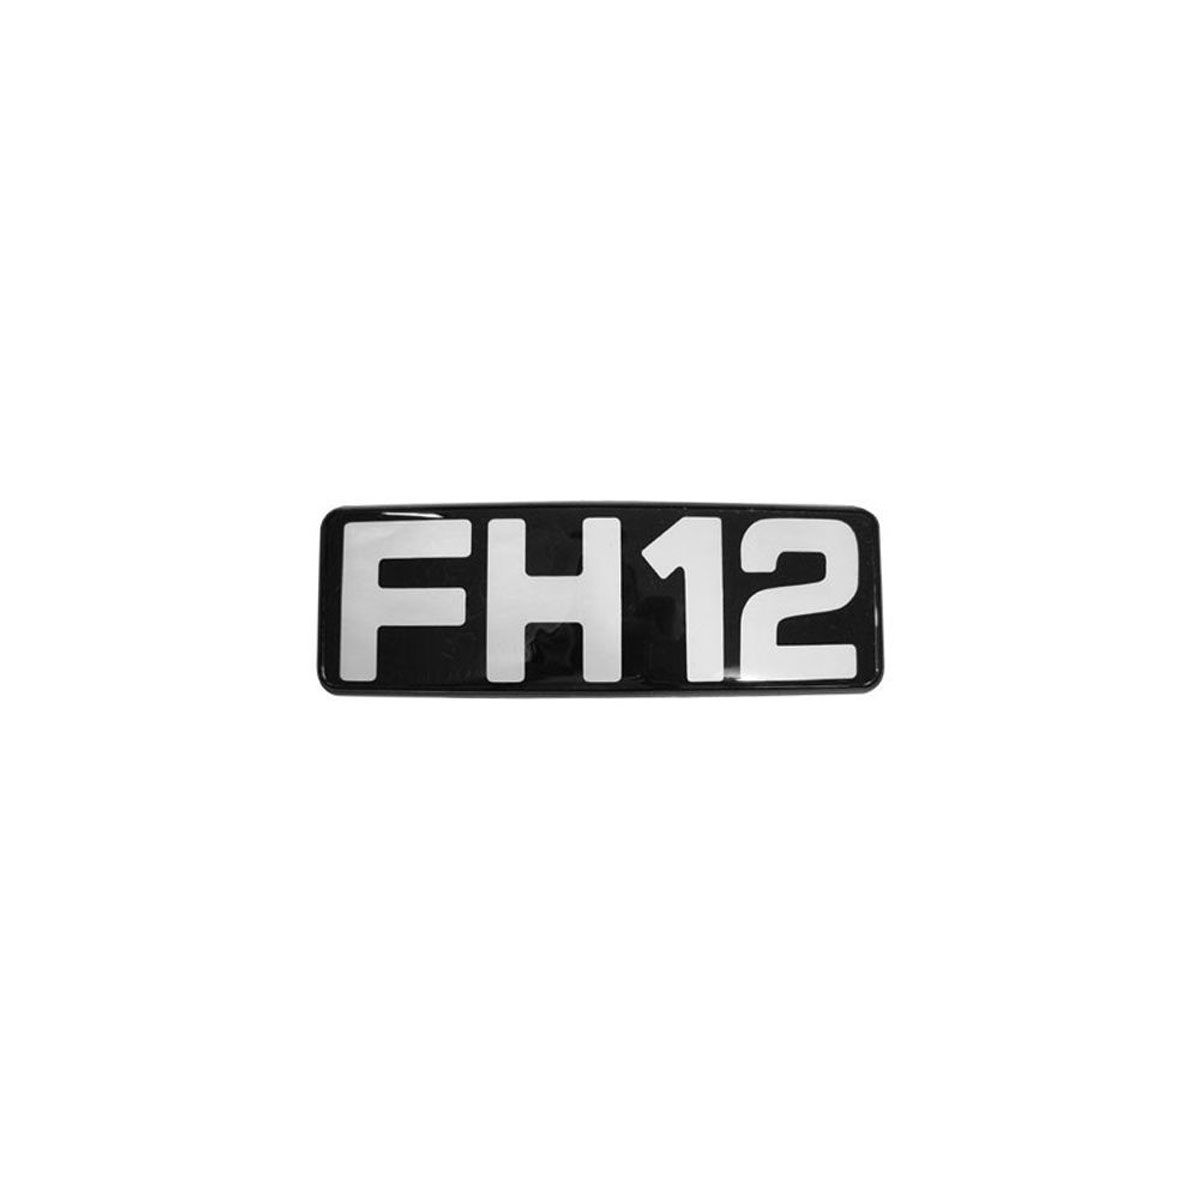 Emblema Frontal Volvo FH 12 8144104